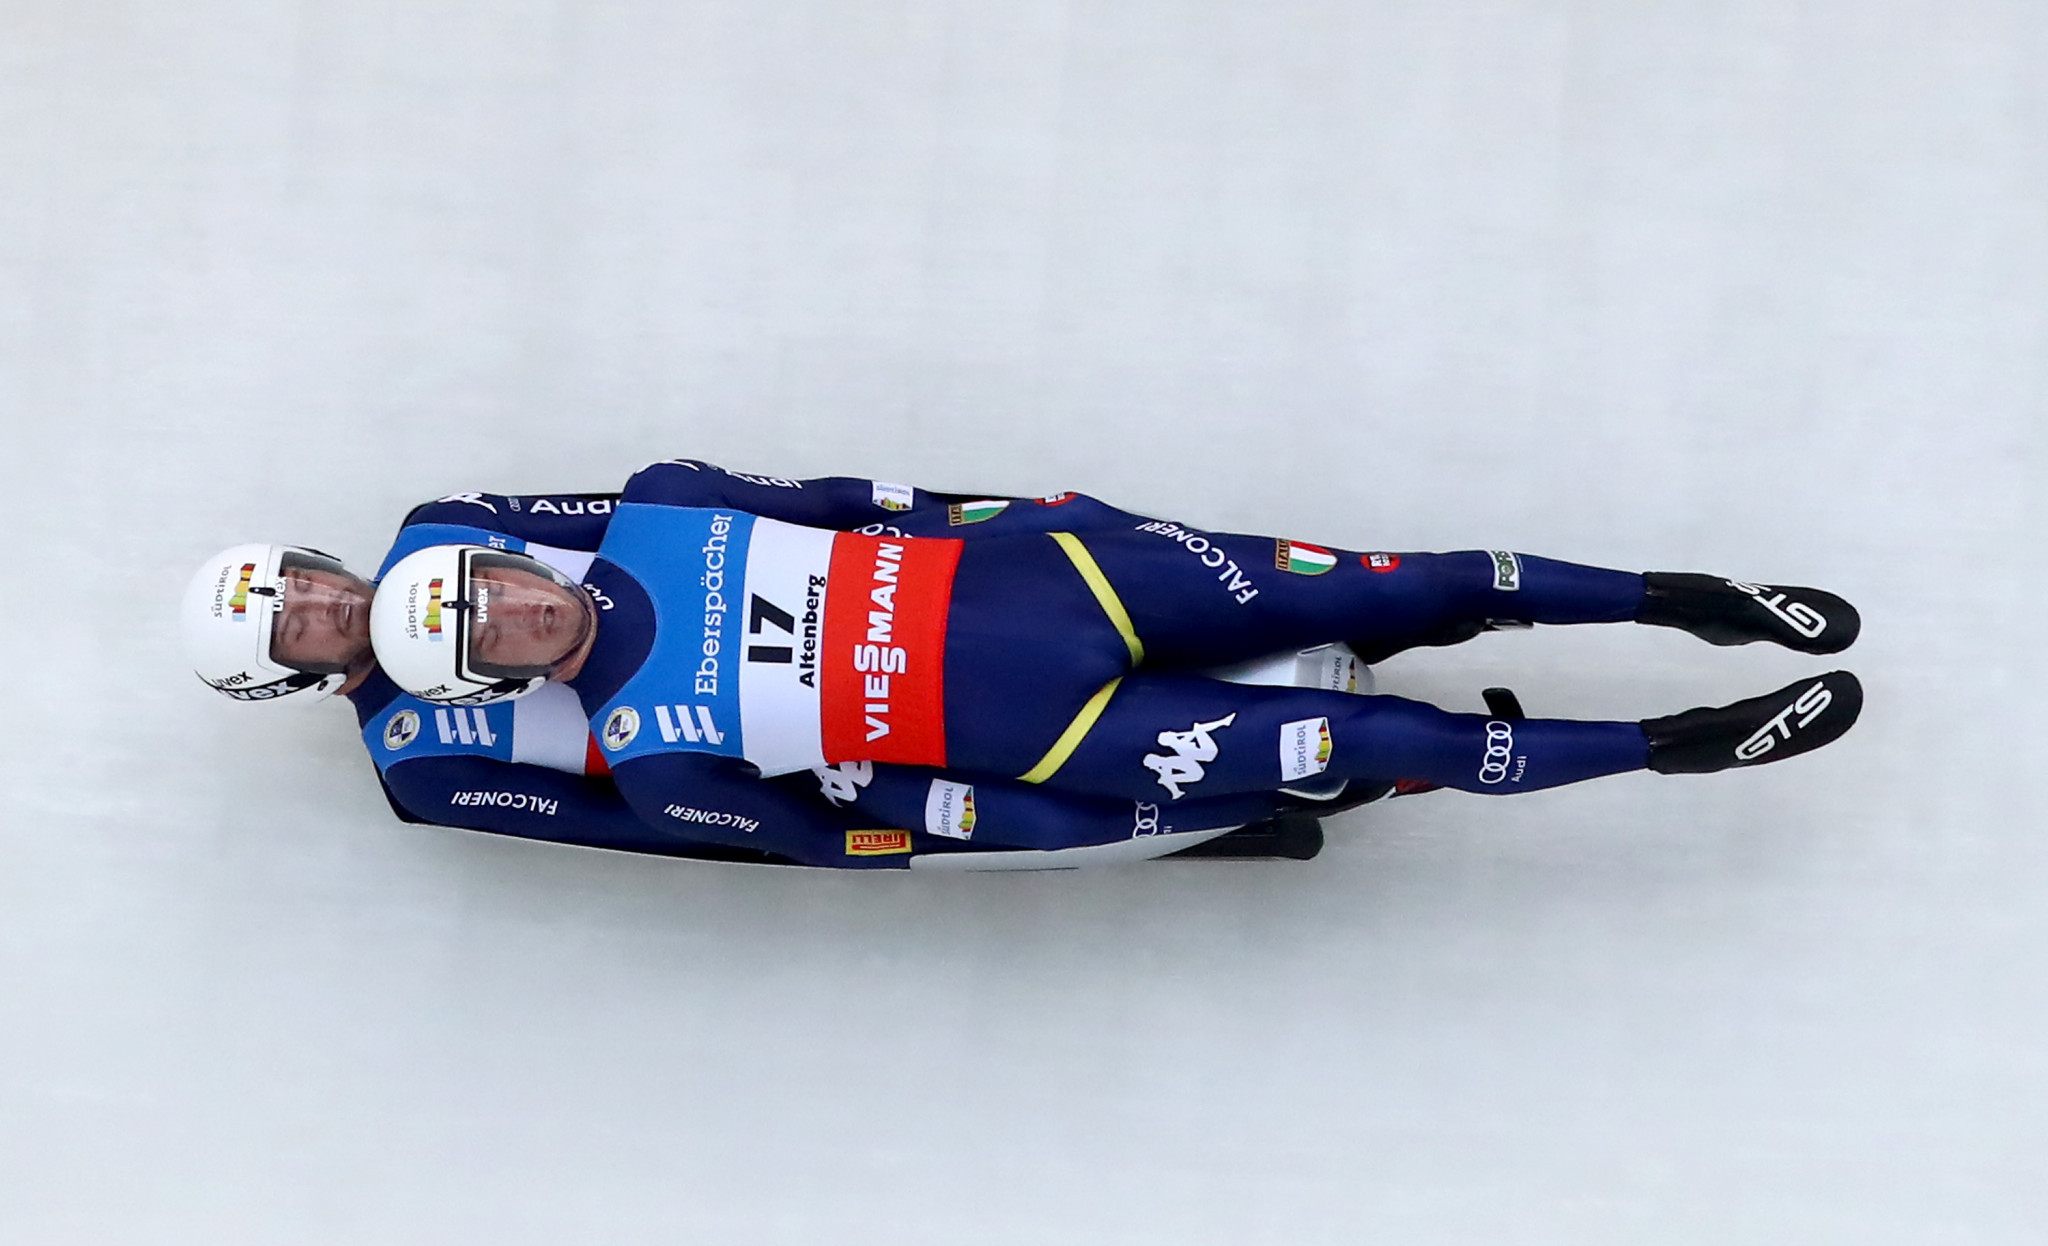 The doubles team of Ludwig Rieder and Patrick Rastner are among those hoping to race at a third Winter Olympics ©Getty Images